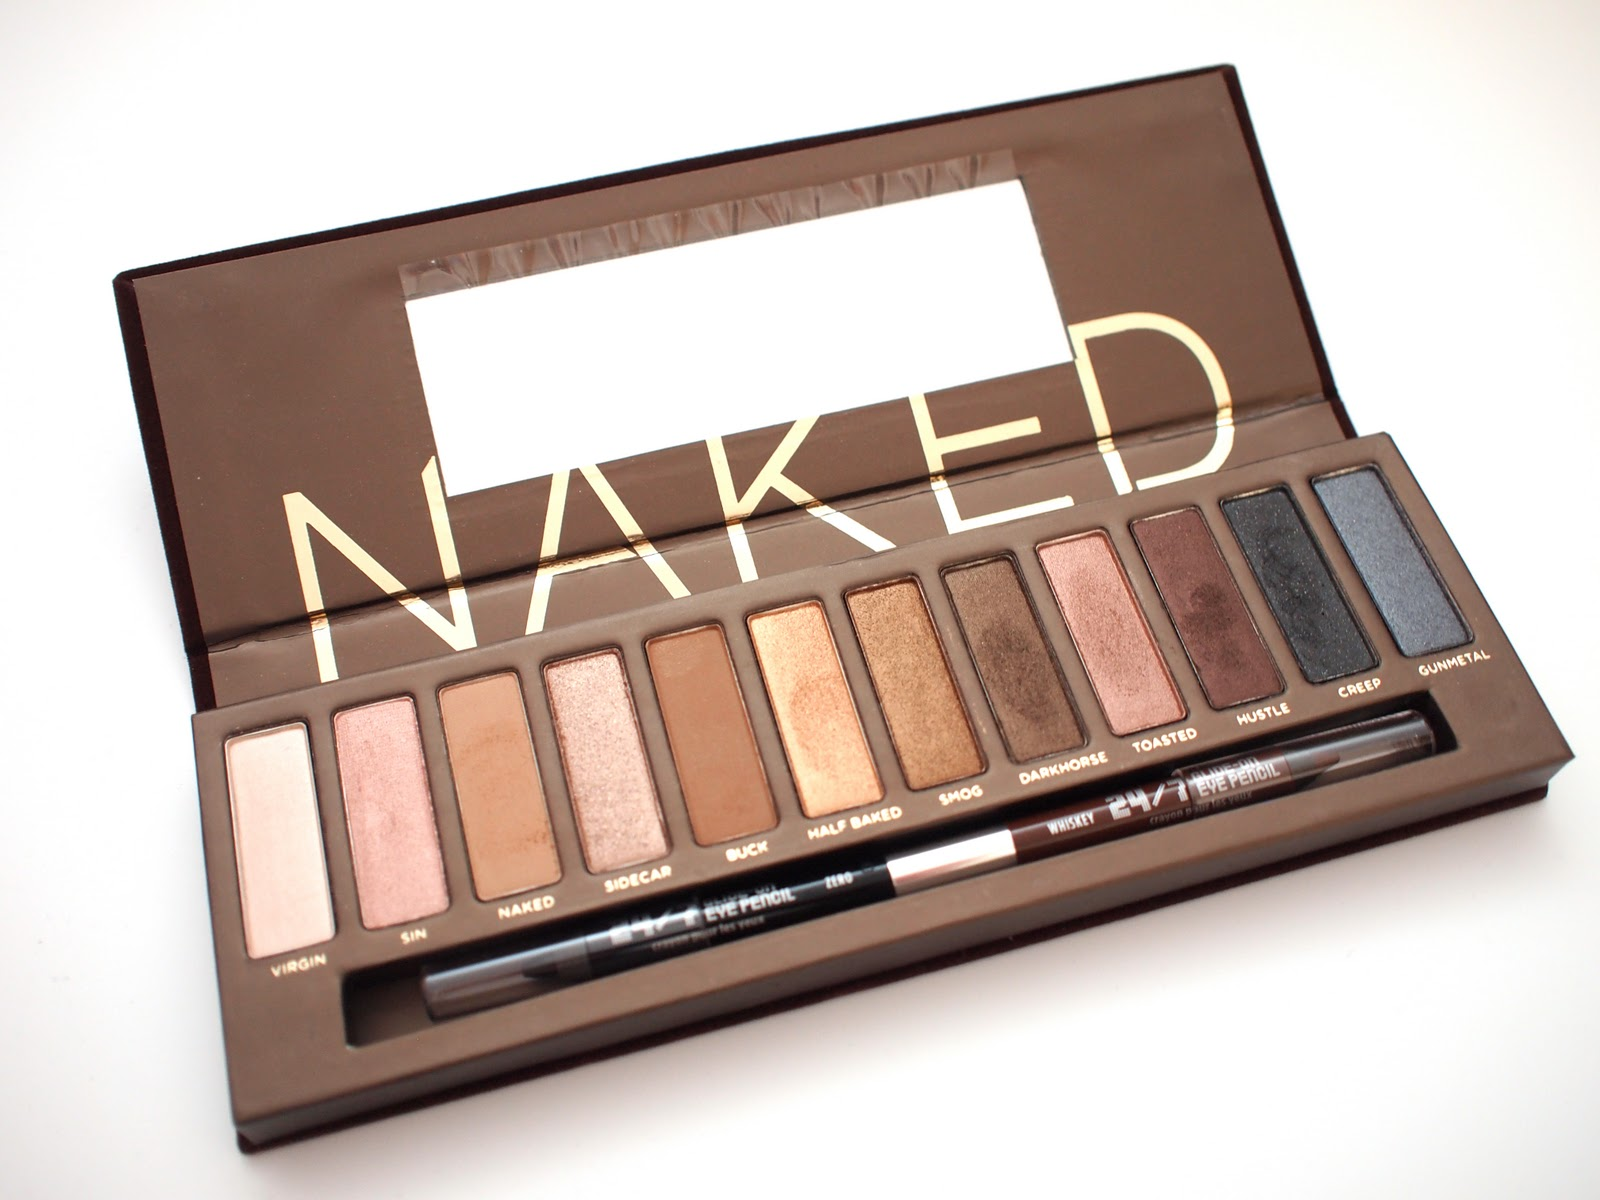 Stylene Review Urban Decay Naked Palette Vs Bobbi Brown Nude Colors Palette-5067